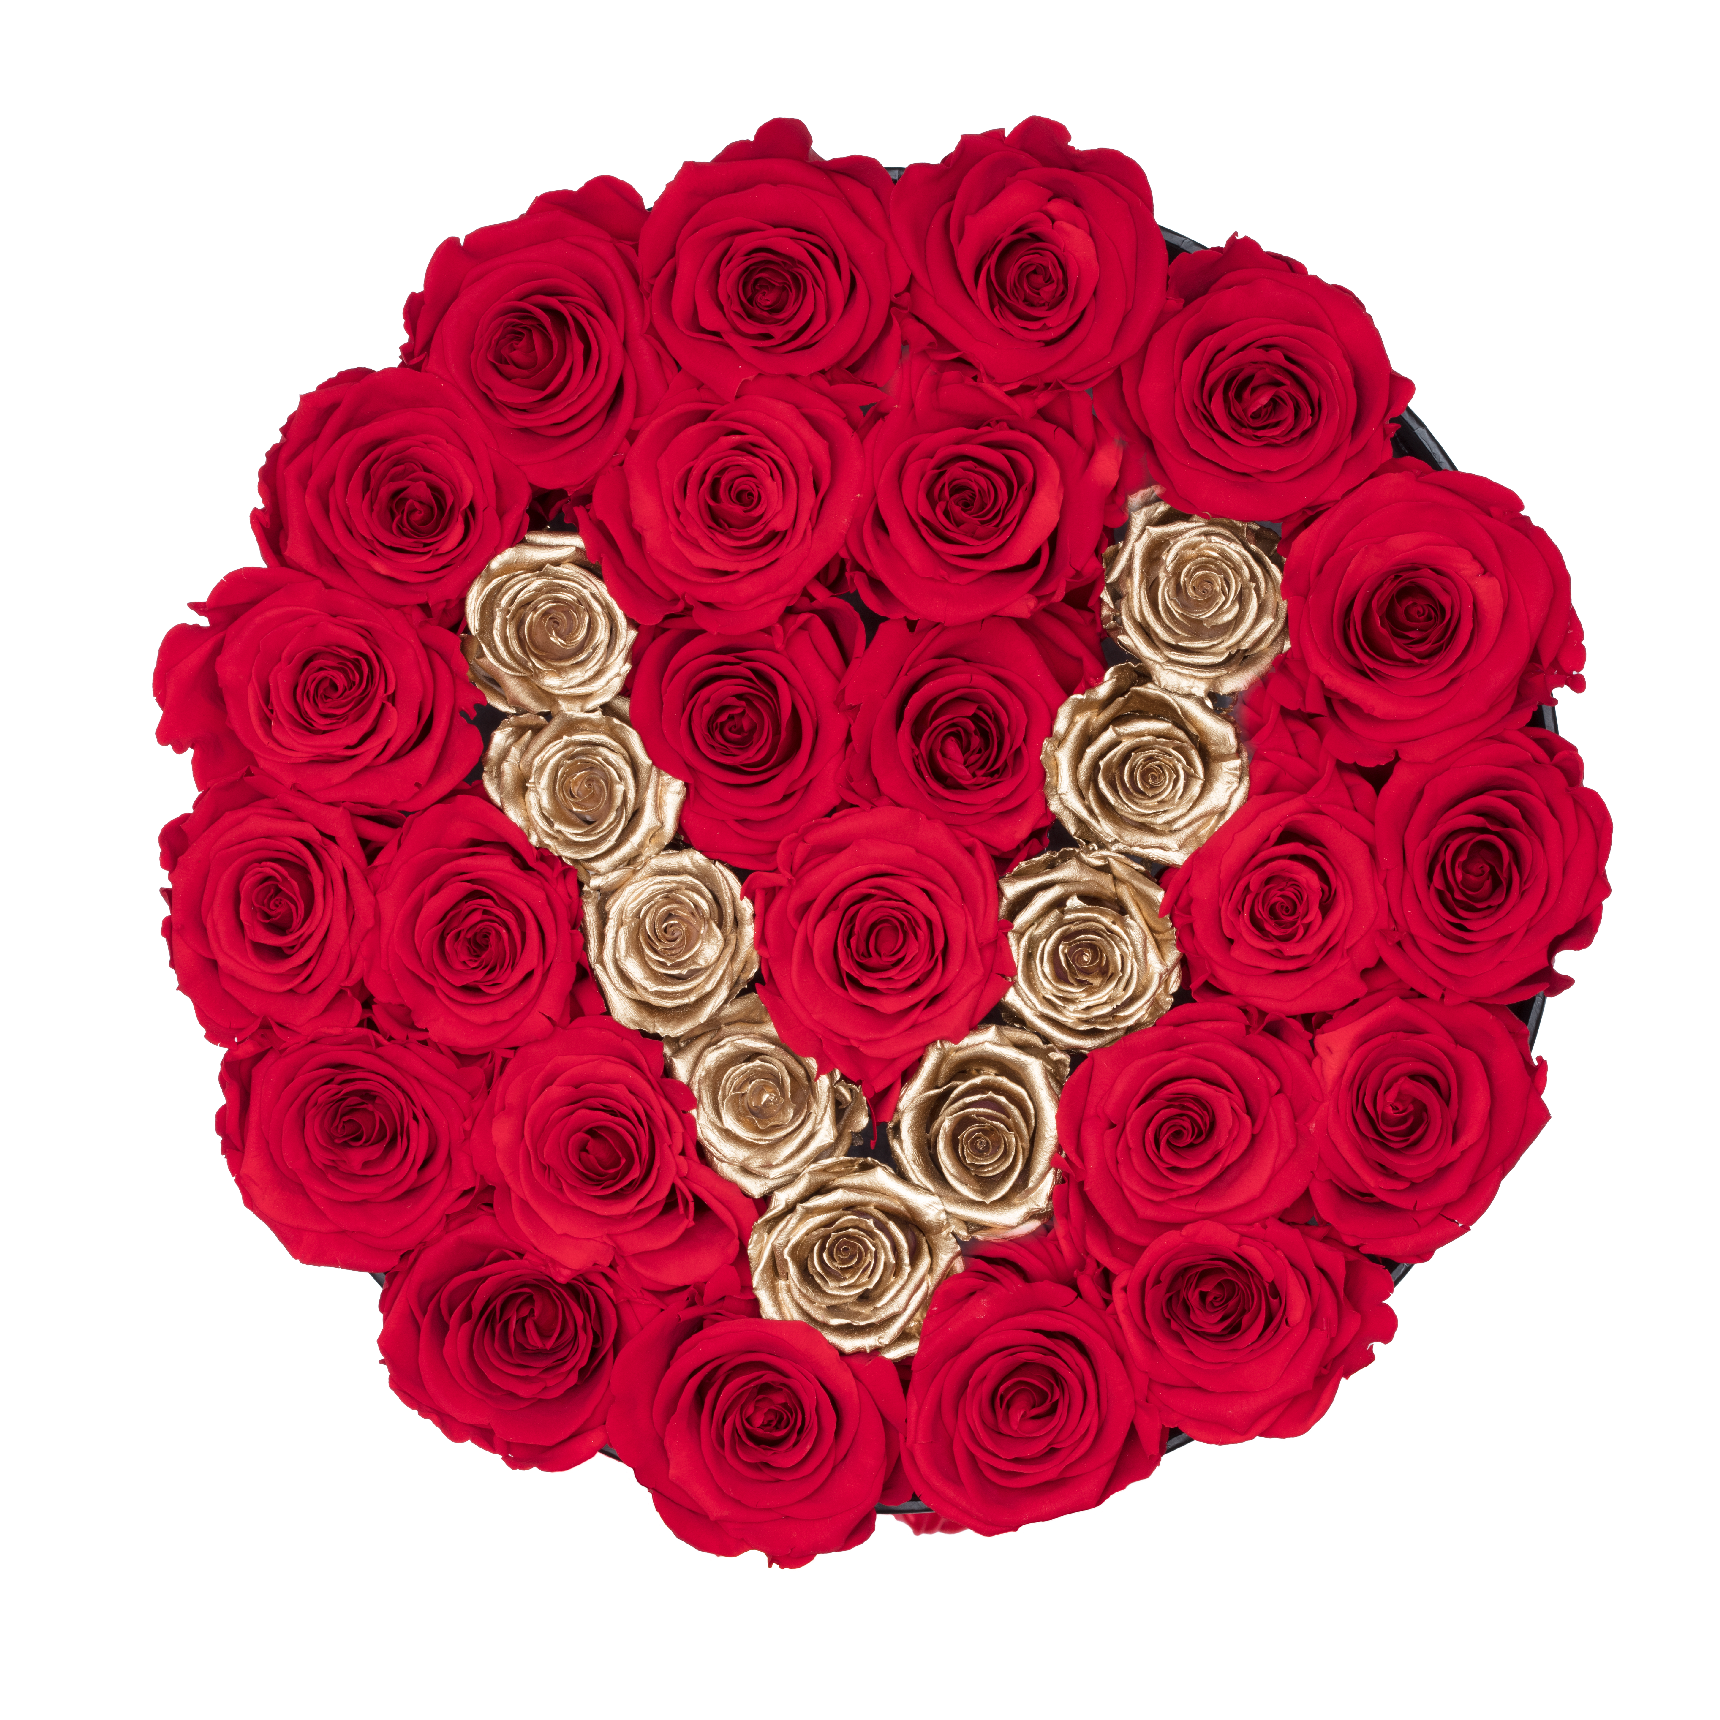 Rose last one year gold letter e preserved roses the only roses gold letter v preserved roses medium round black huggy rose box the altavistaventures Images